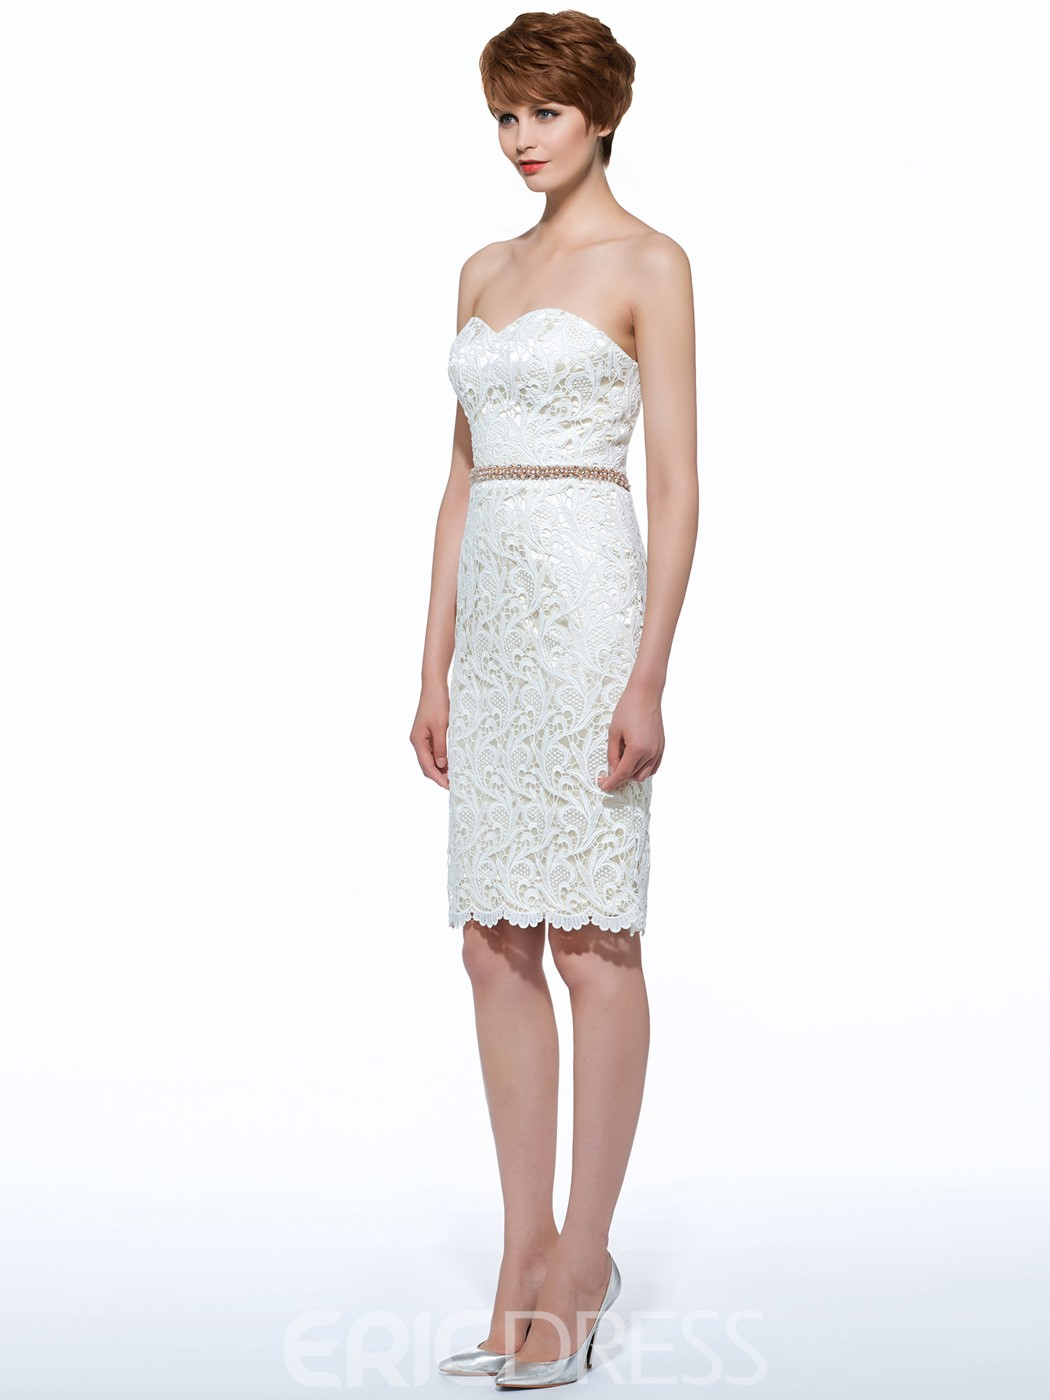 Ericdress Beautiful Sweetheart Sheath Knee Length Mother Of The Bride Dress With Jacket